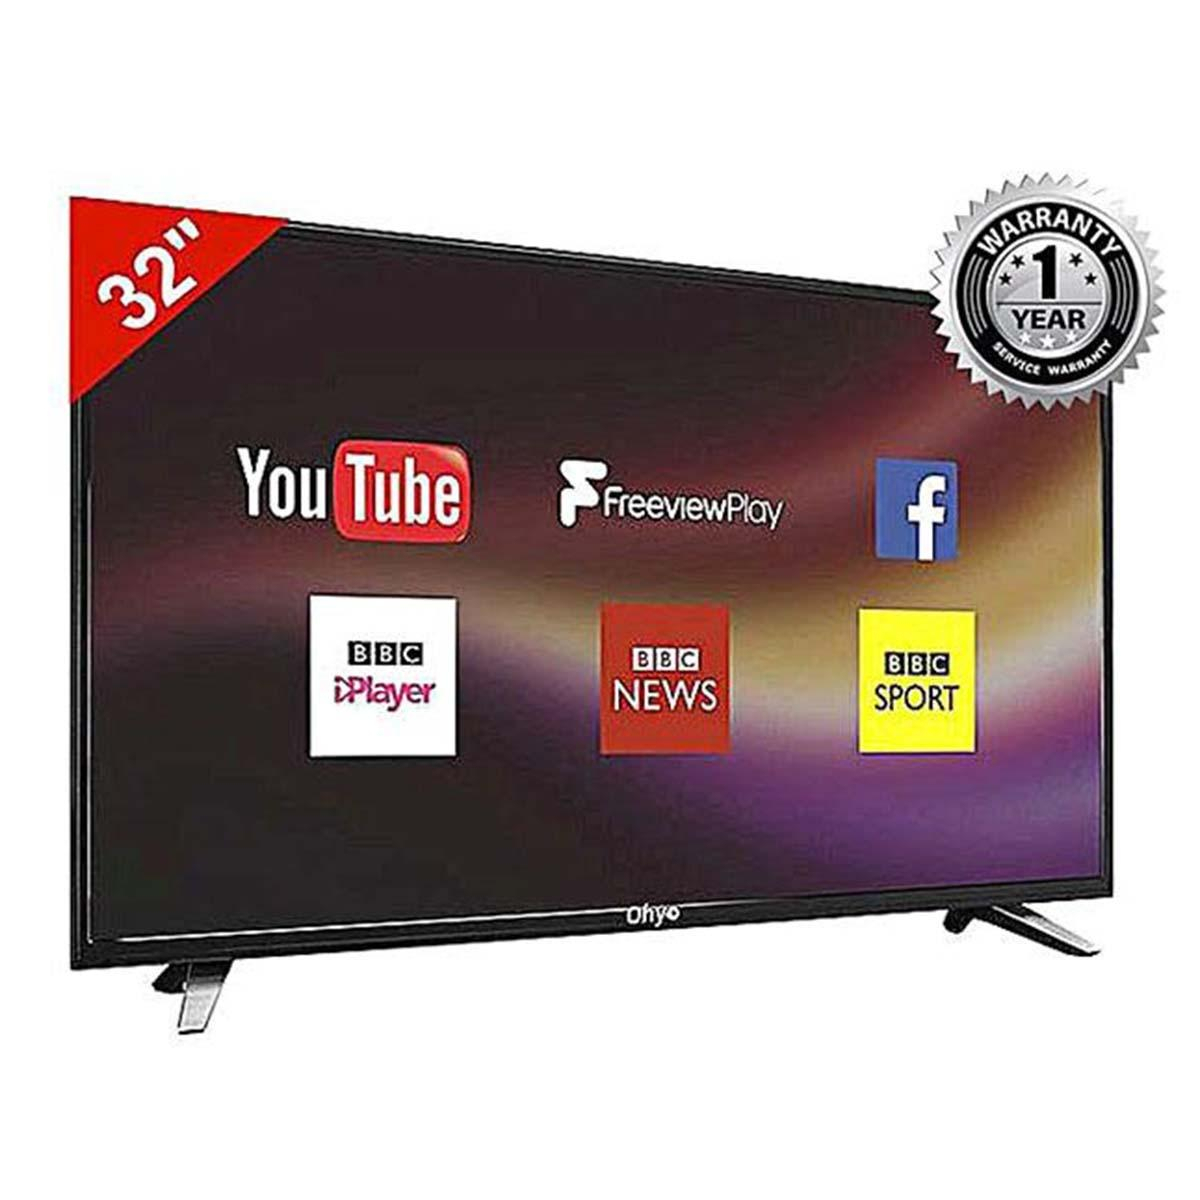 Buy Led Tv Online In Bangladesh At Best Price – Daraz (View 25 of 30)